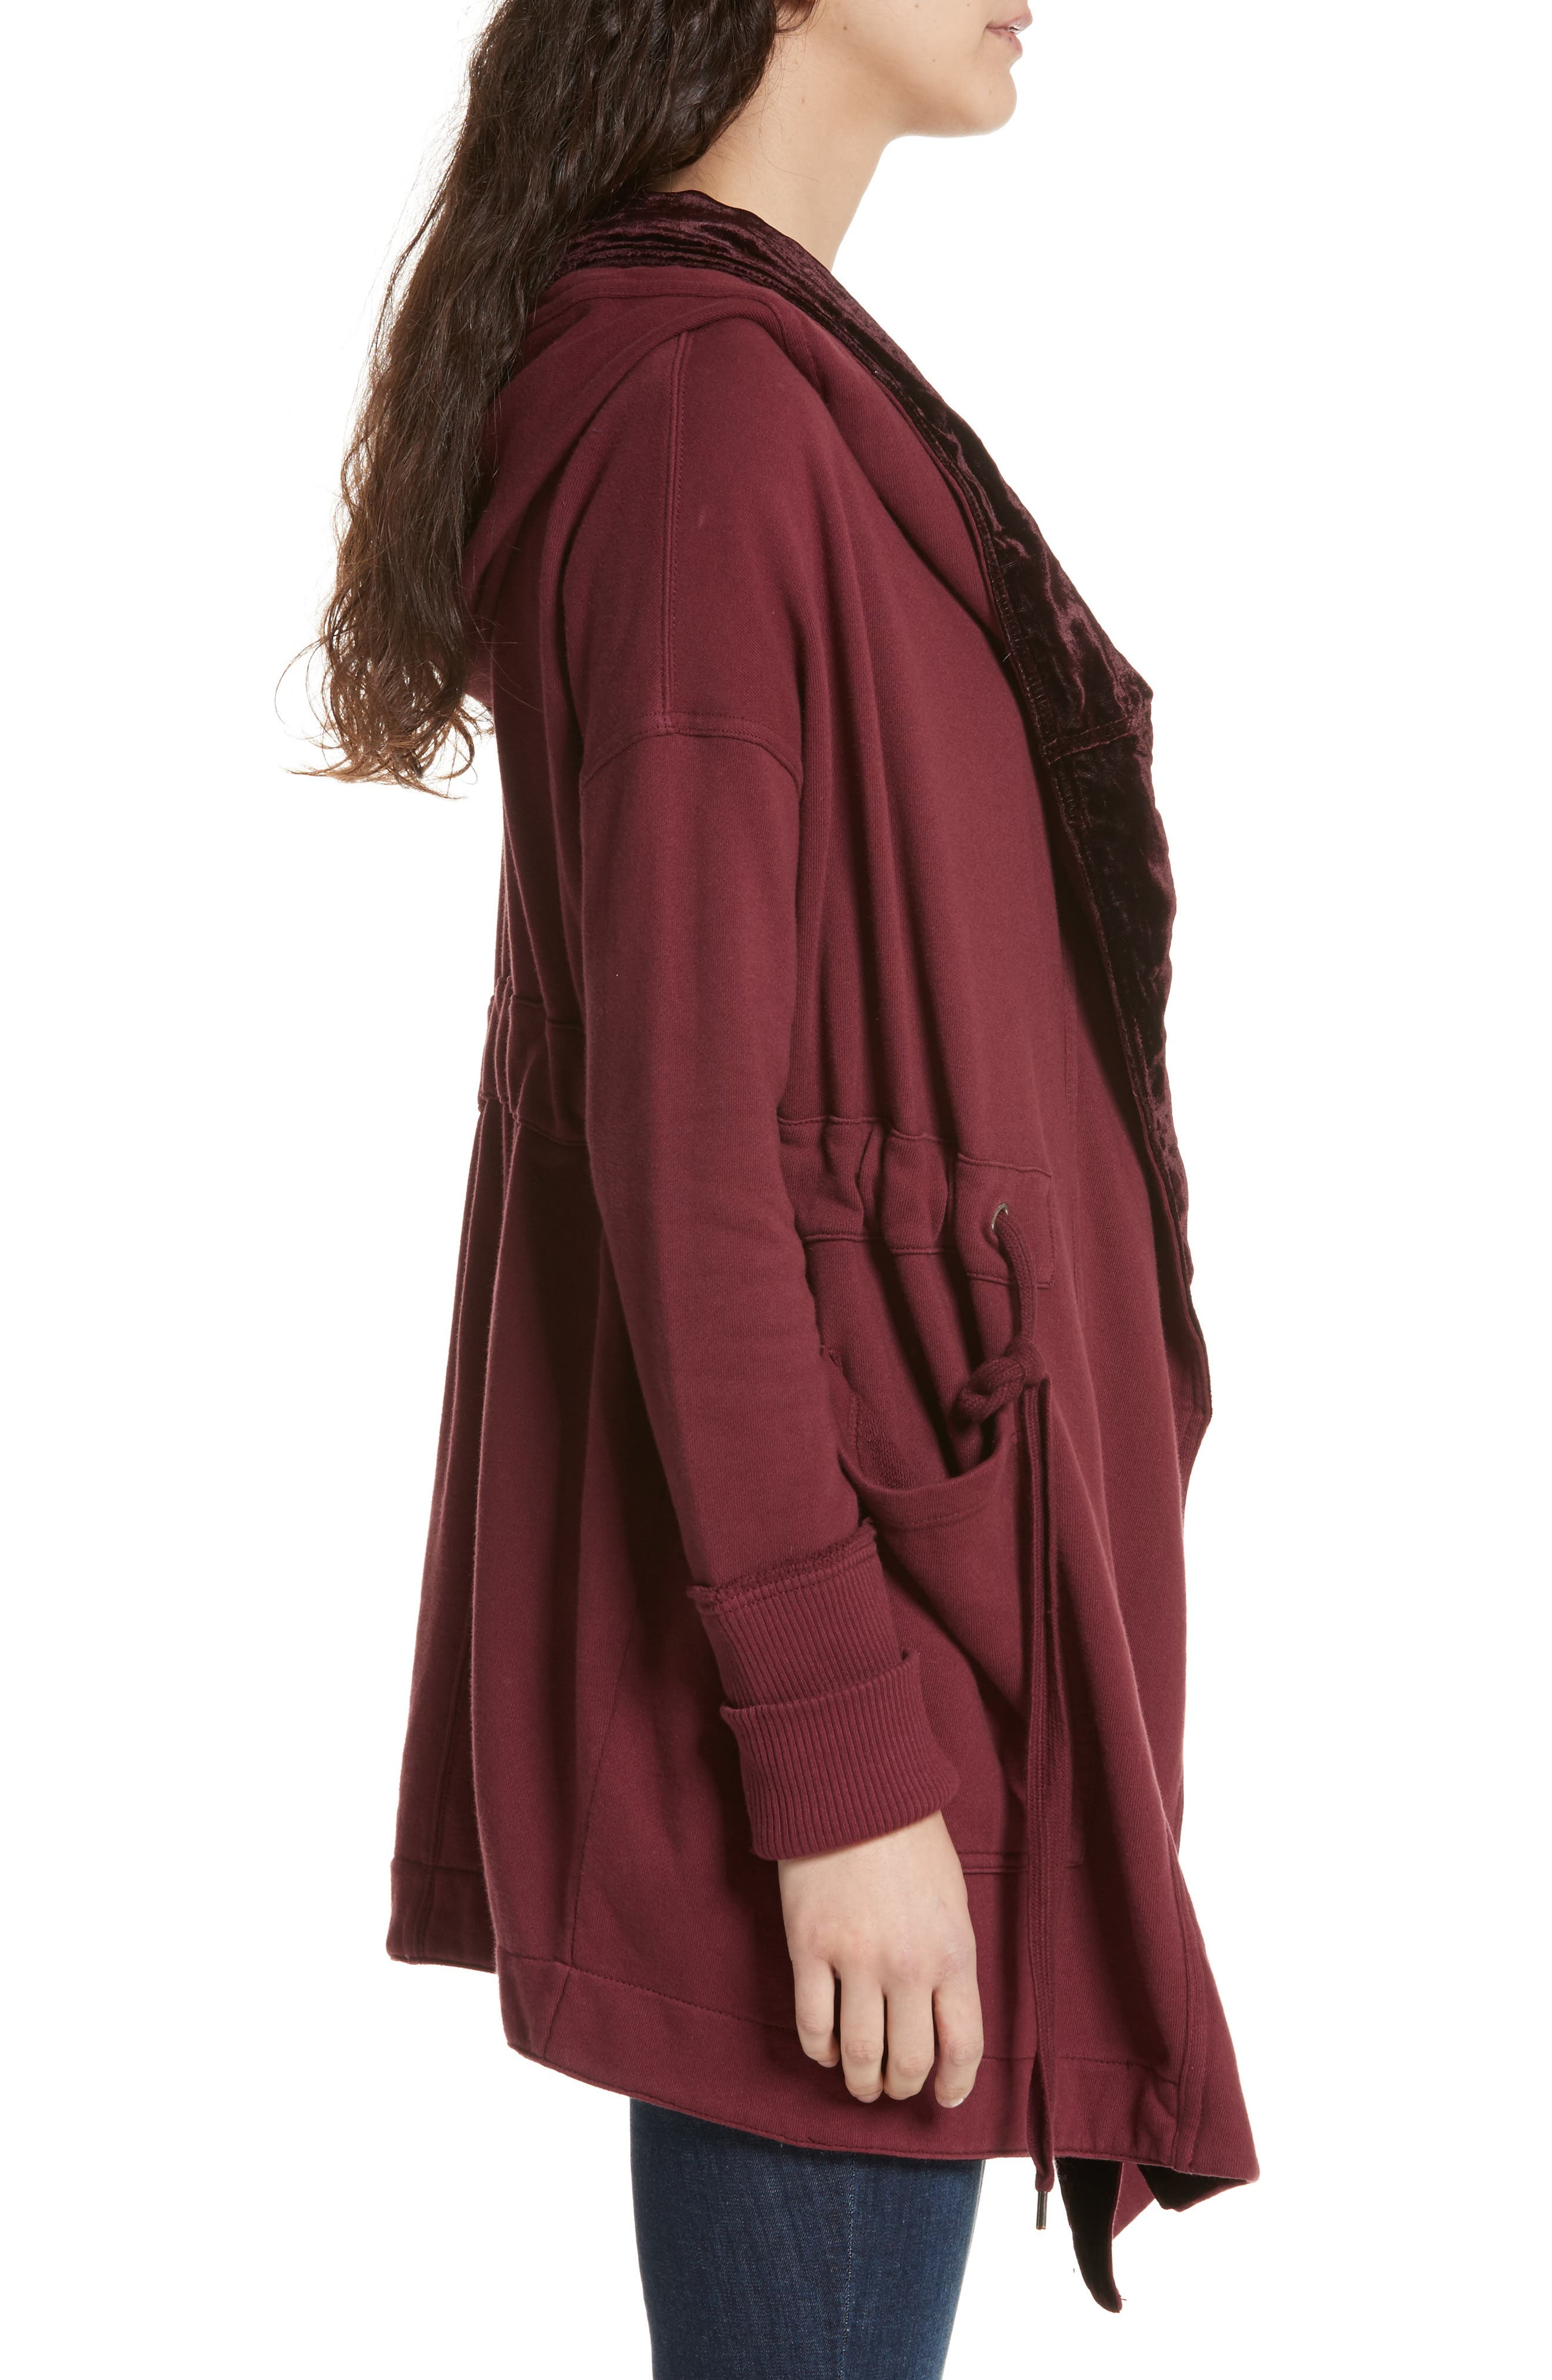 Westwood Cardigan,                             Alternate thumbnail 3, color,                             Wine